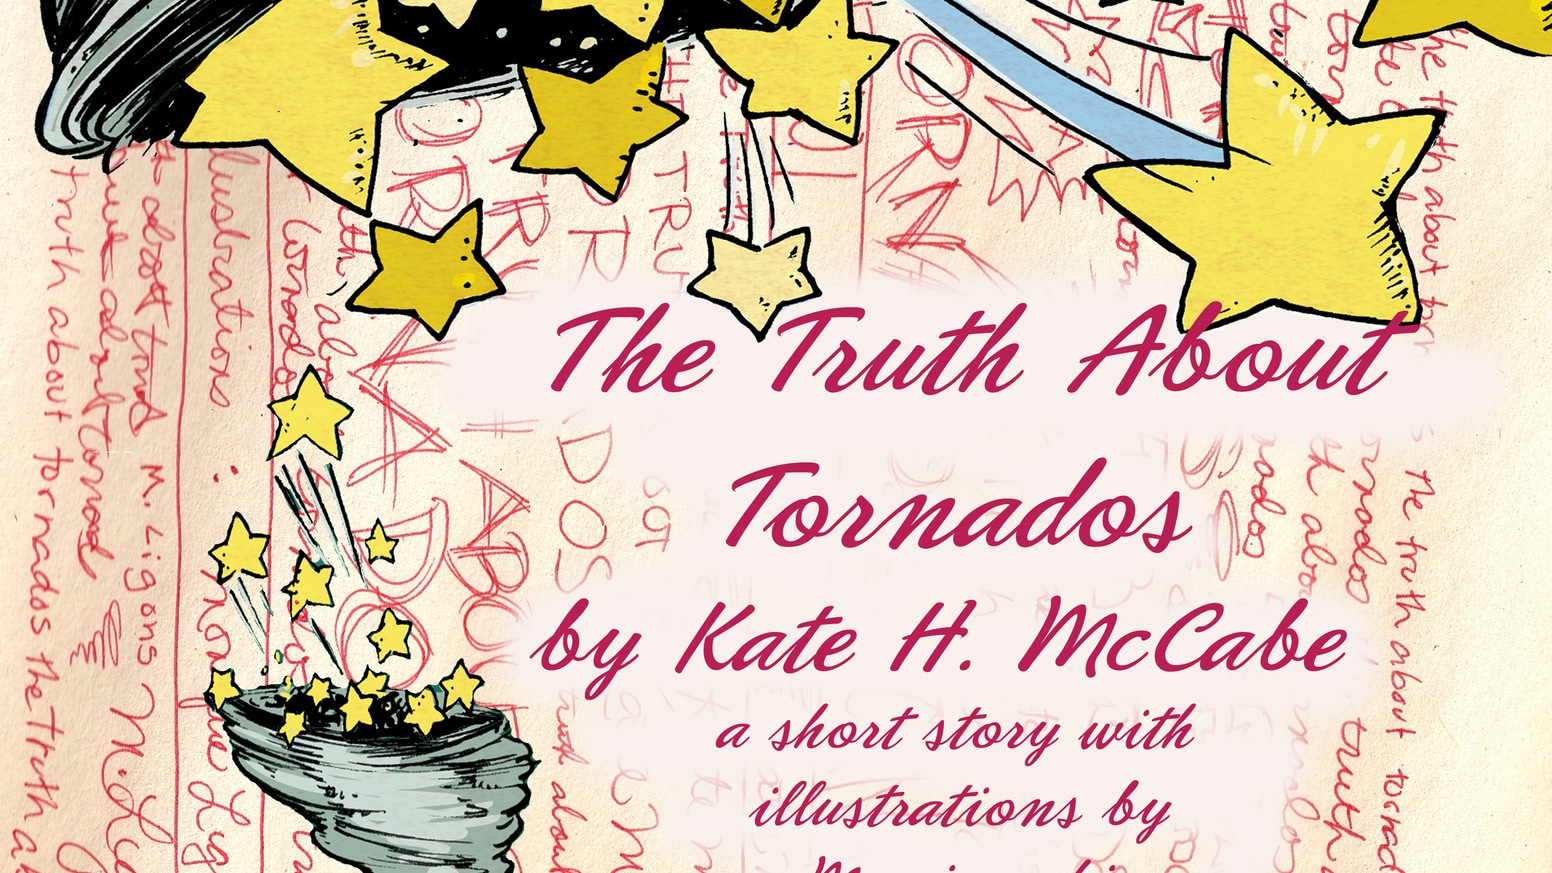 The Truth About Tornados - a short story with Rad drawings